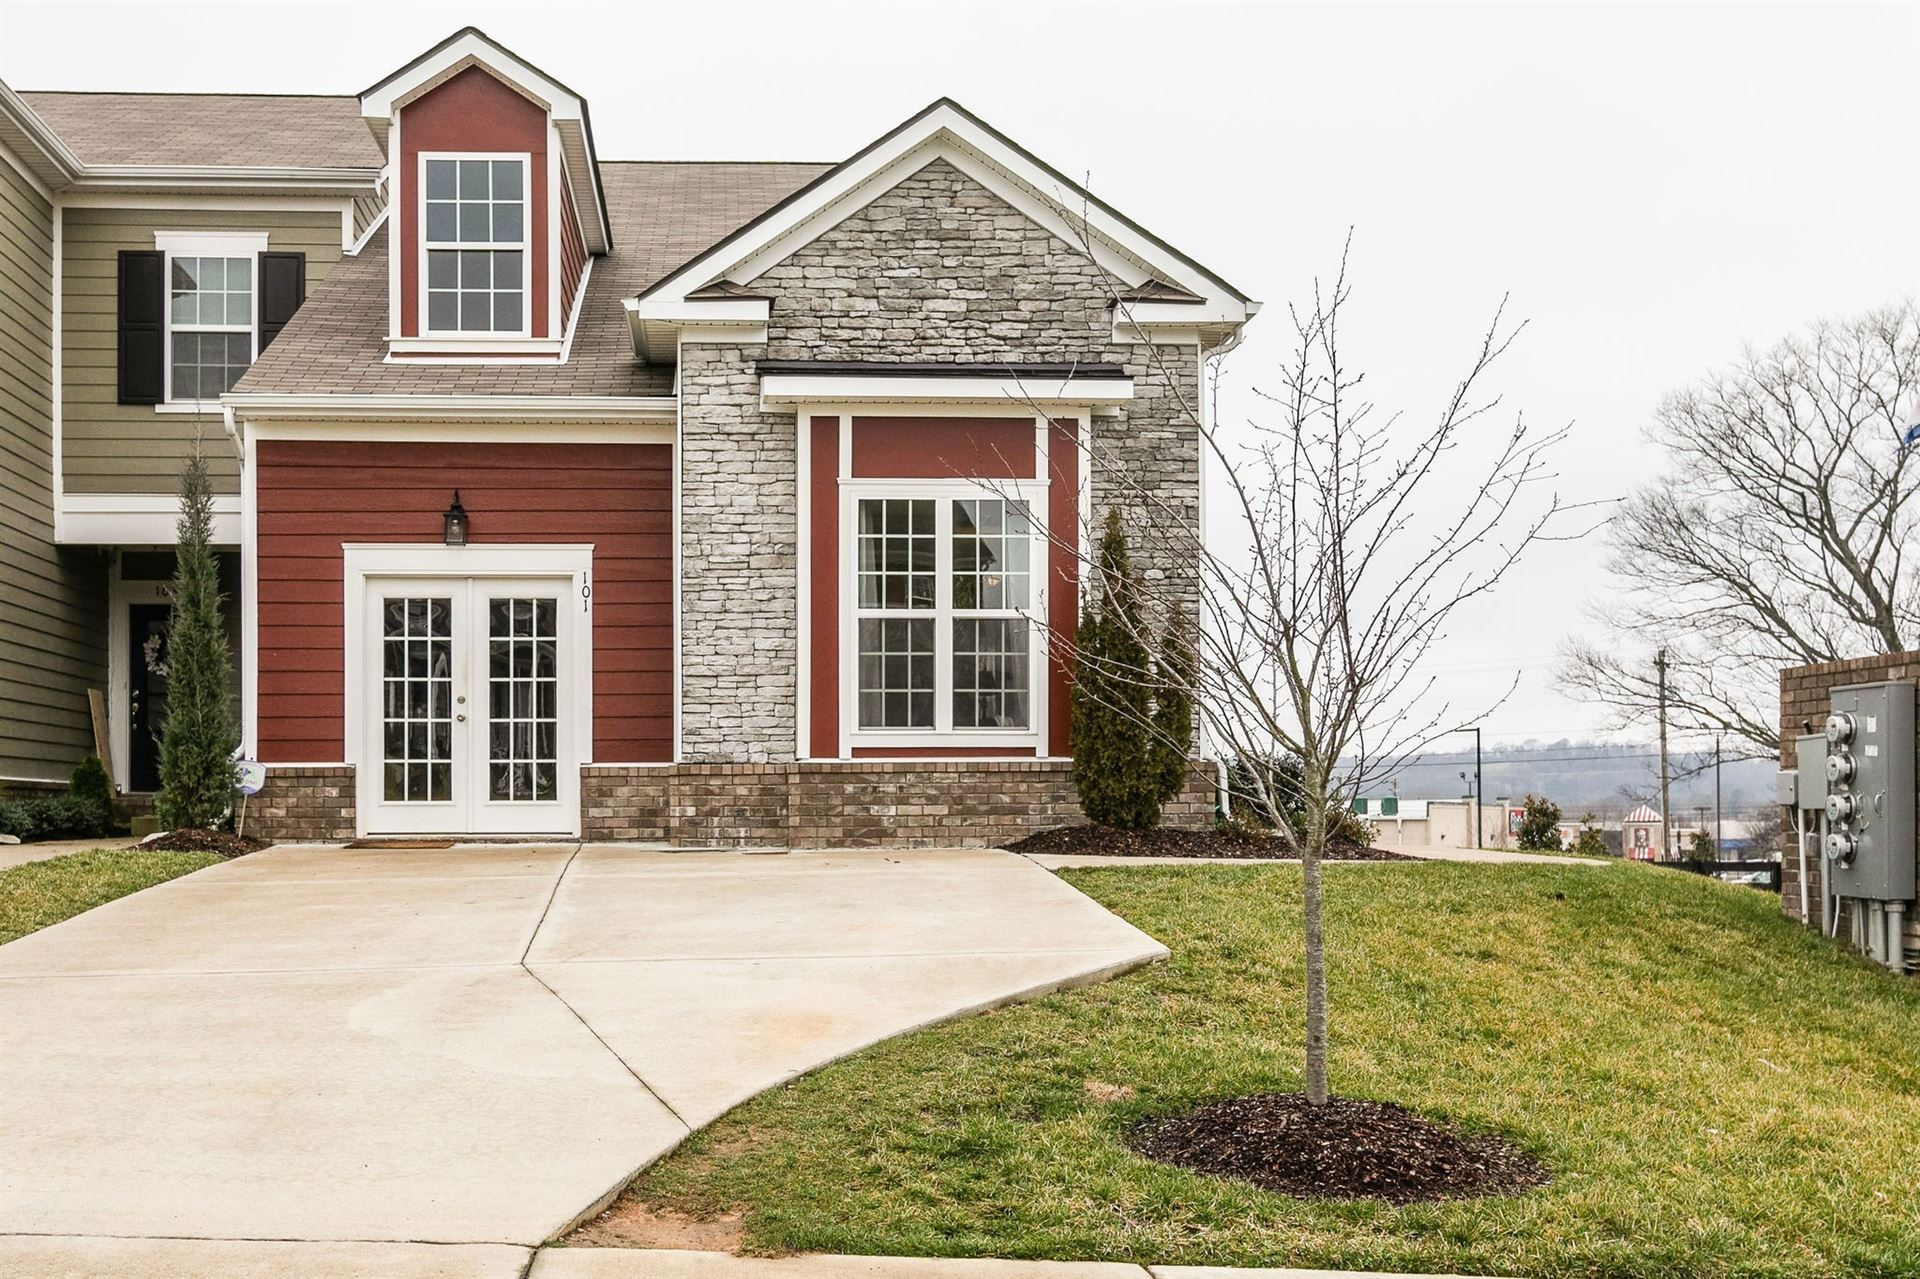 Photo of 701 Finse Dr, Spring Hill, TN 37174 (MLS # 2134094)